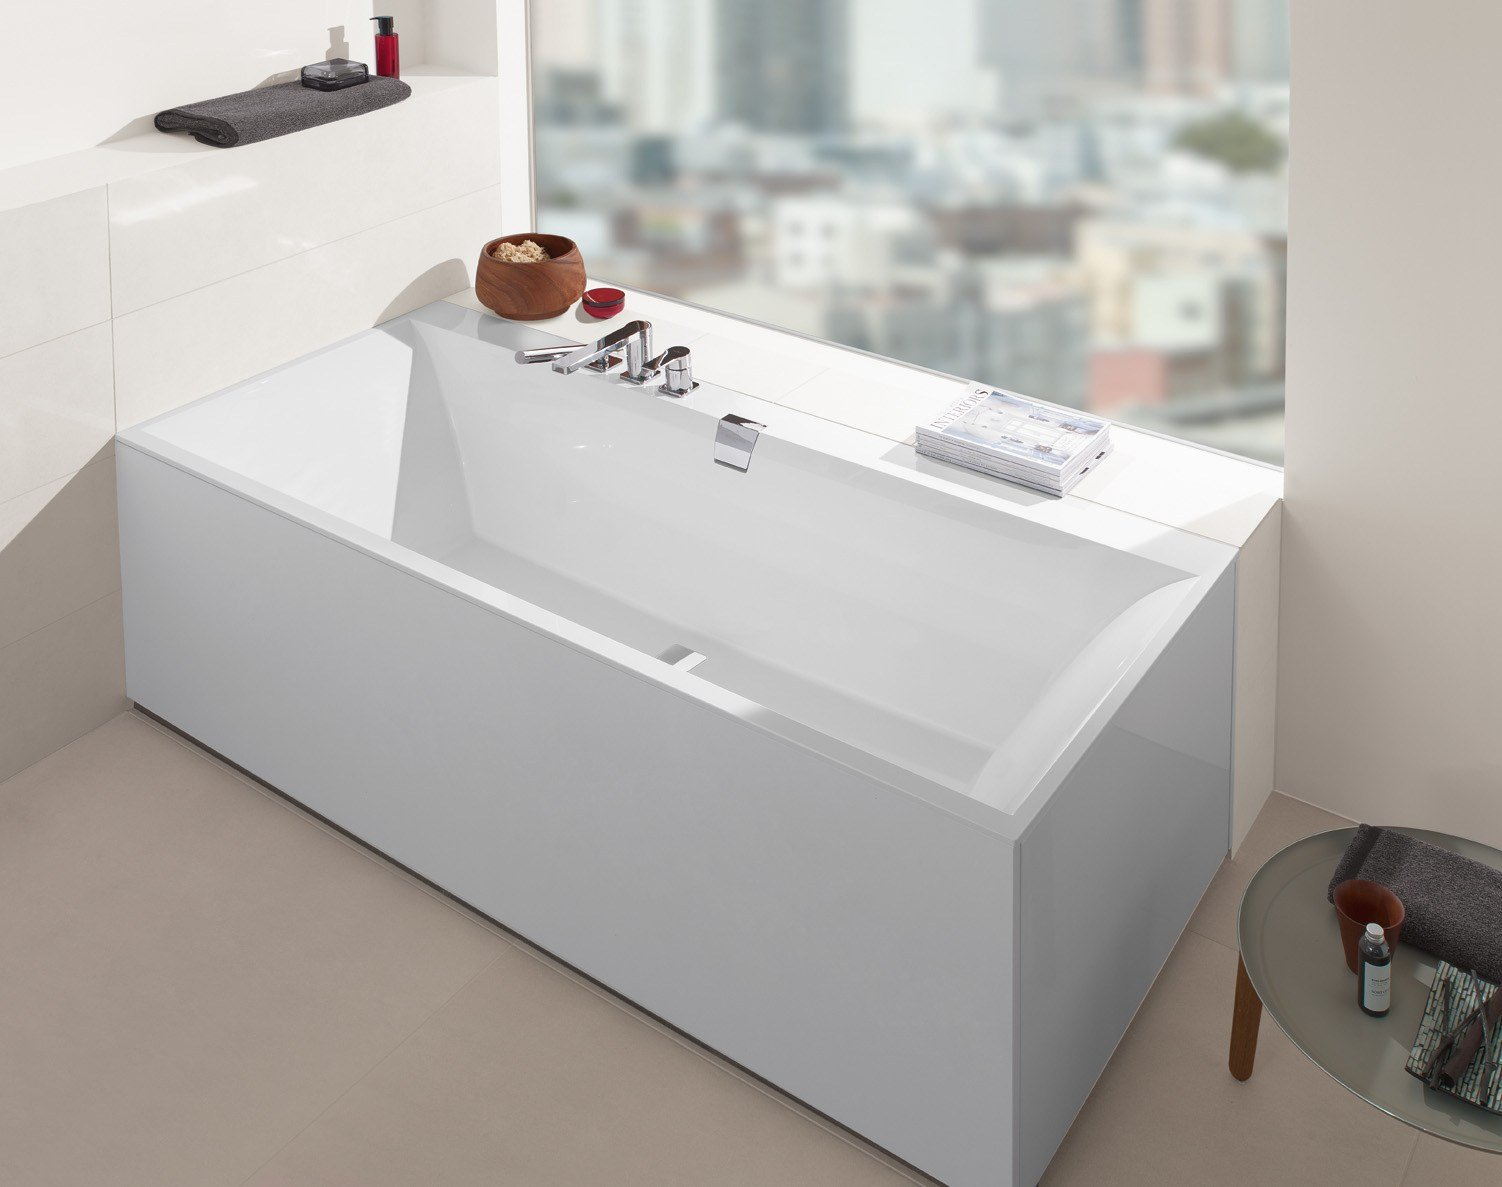 squaro edge 12 bathtub by villeroy boch. Black Bedroom Furniture Sets. Home Design Ideas